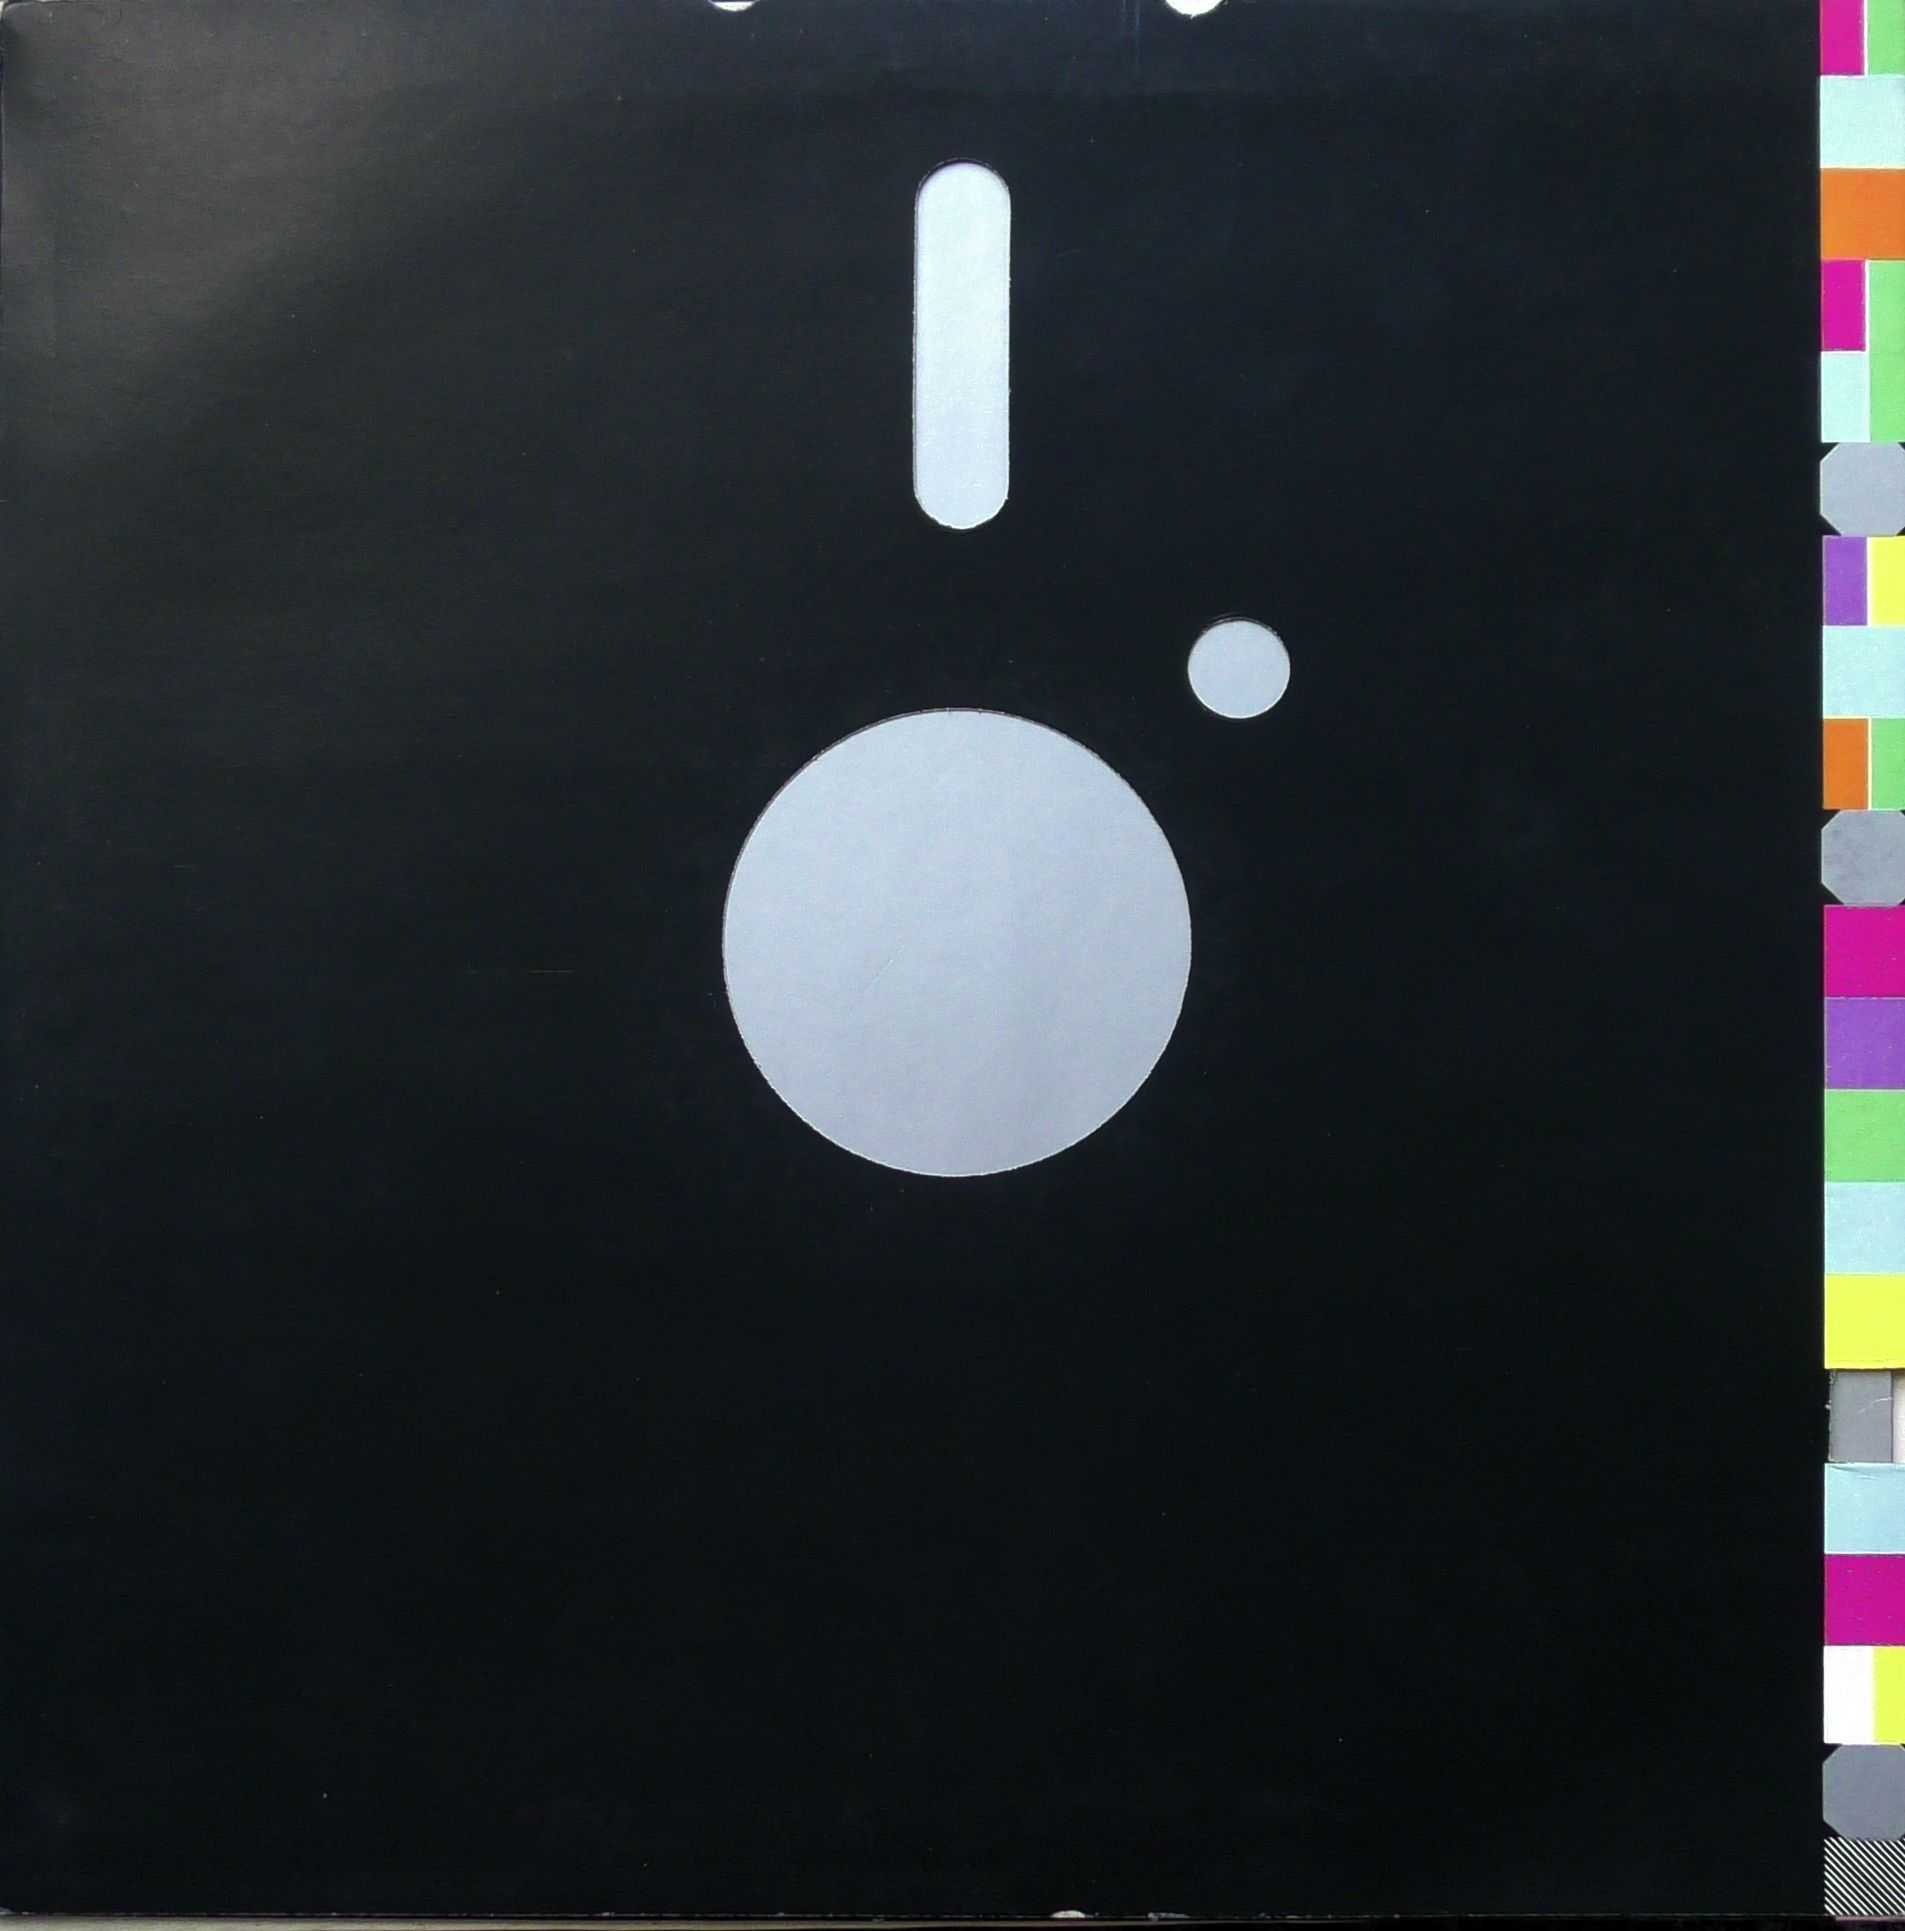 New Order Blue Monday Factory Fac 73 Vinyl 12 45 Rpm Single Vinyl Record Collection Vinyl Vinyl Records